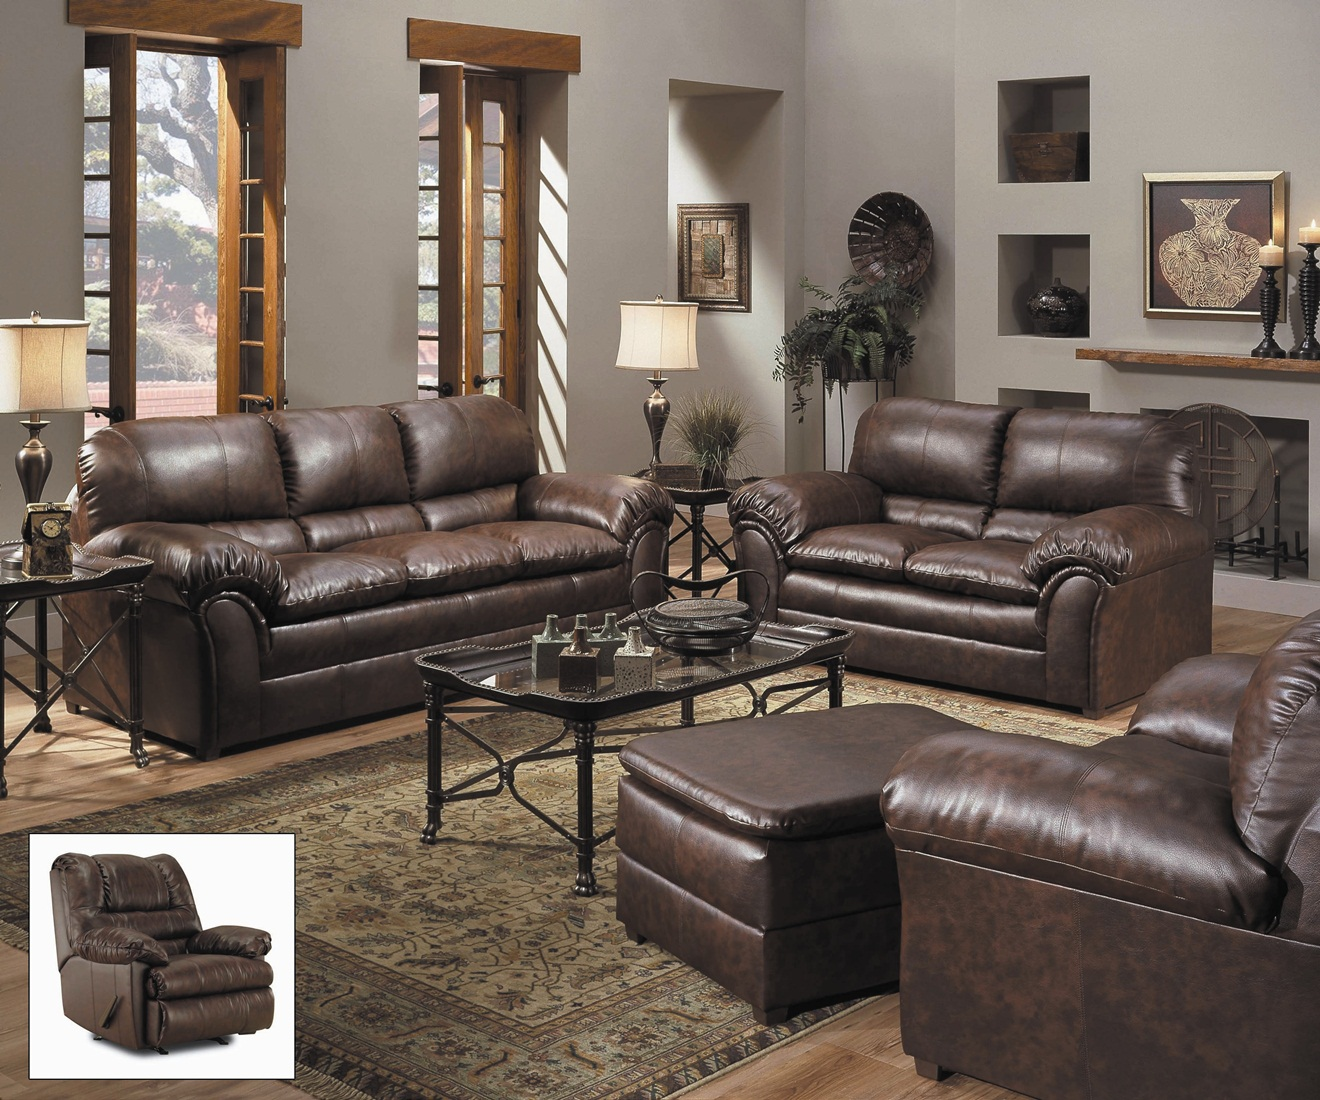 Leather Living Room Chair Geneva Classic Brown Bonded Leather Living Room Furniture